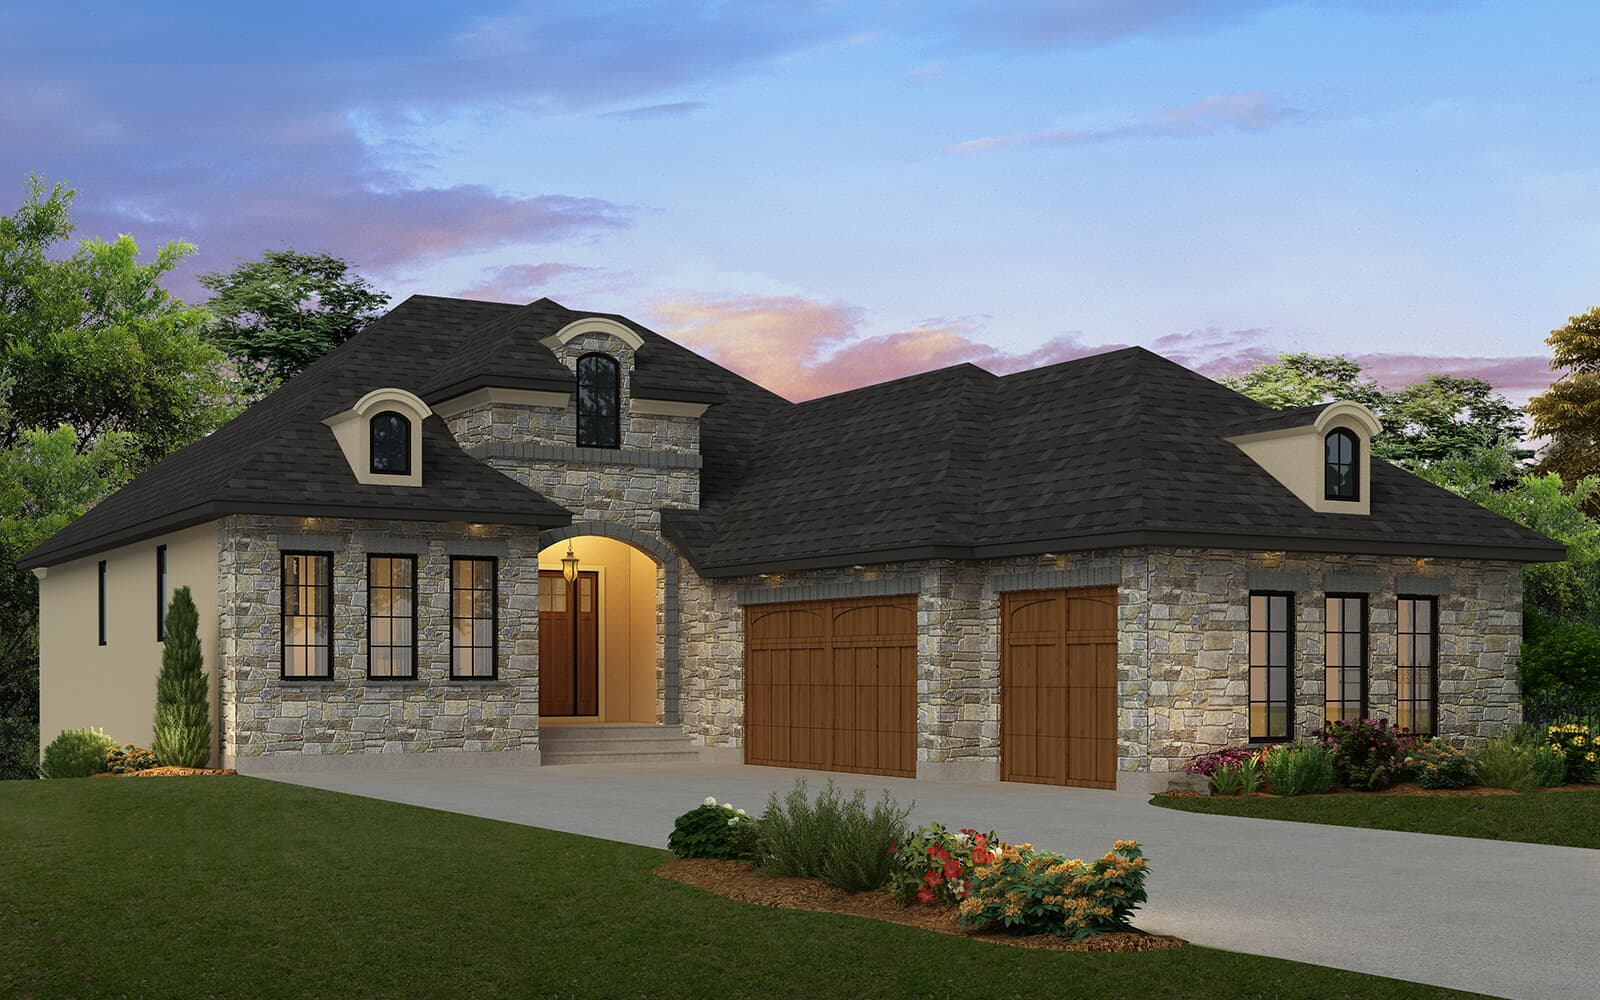 the exterior rendering in the carrara 2 in cranstons riverstone